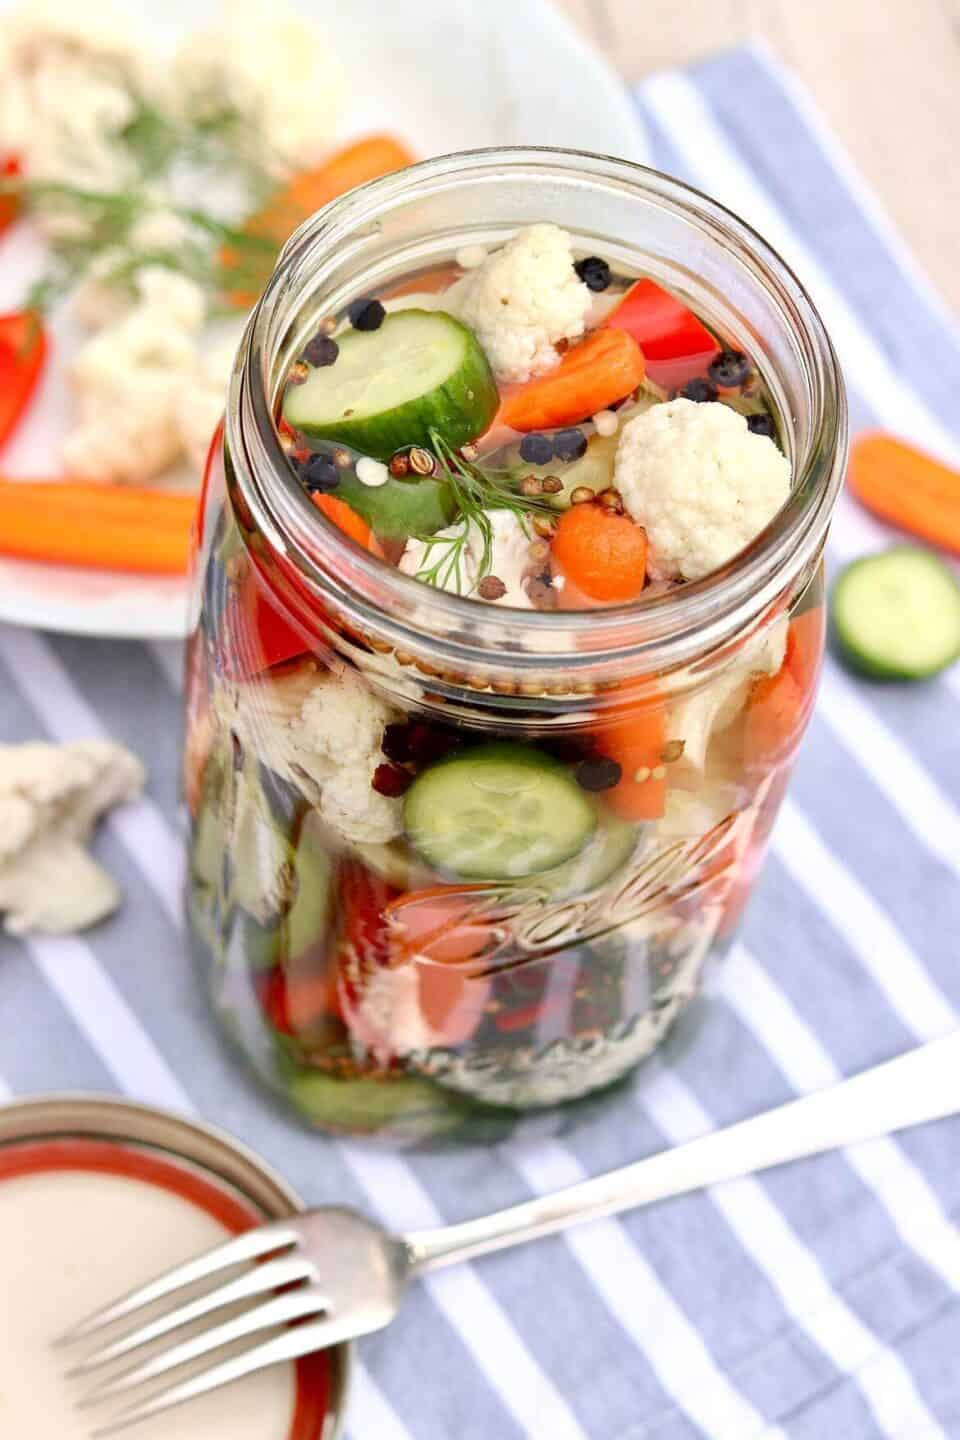 Pickling Recipes to Try This Summer